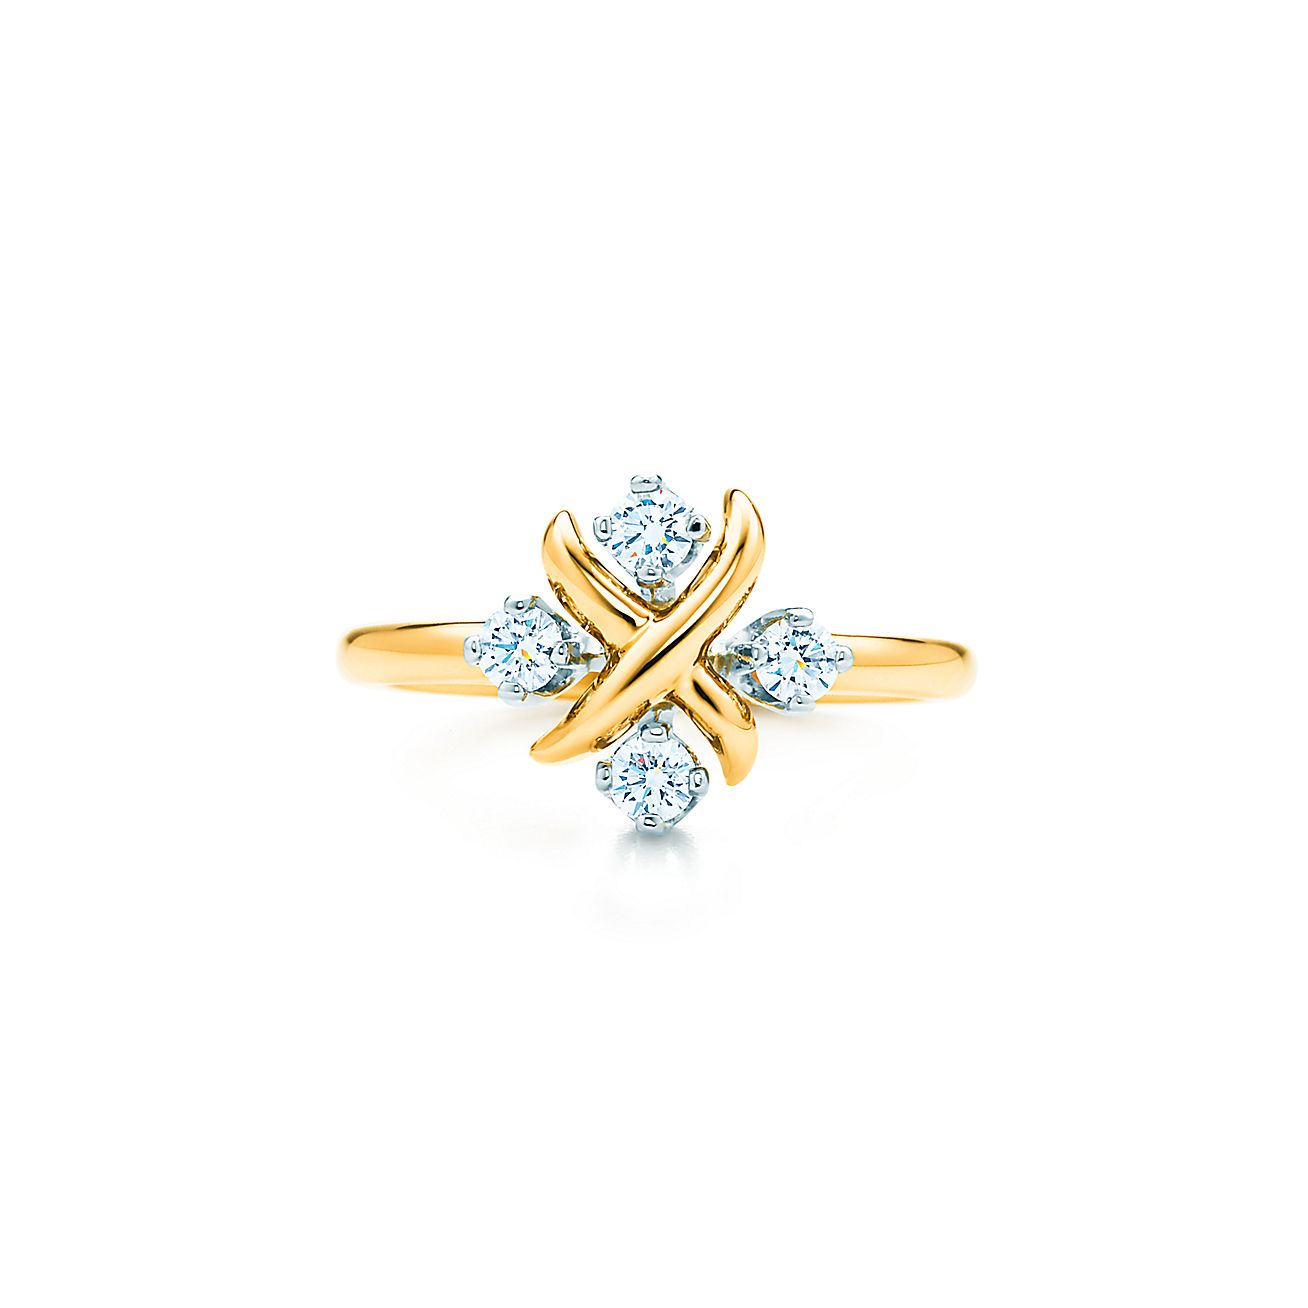 Tiffany Amp Co Schlumberger Lynn Ring In 18k Gold With